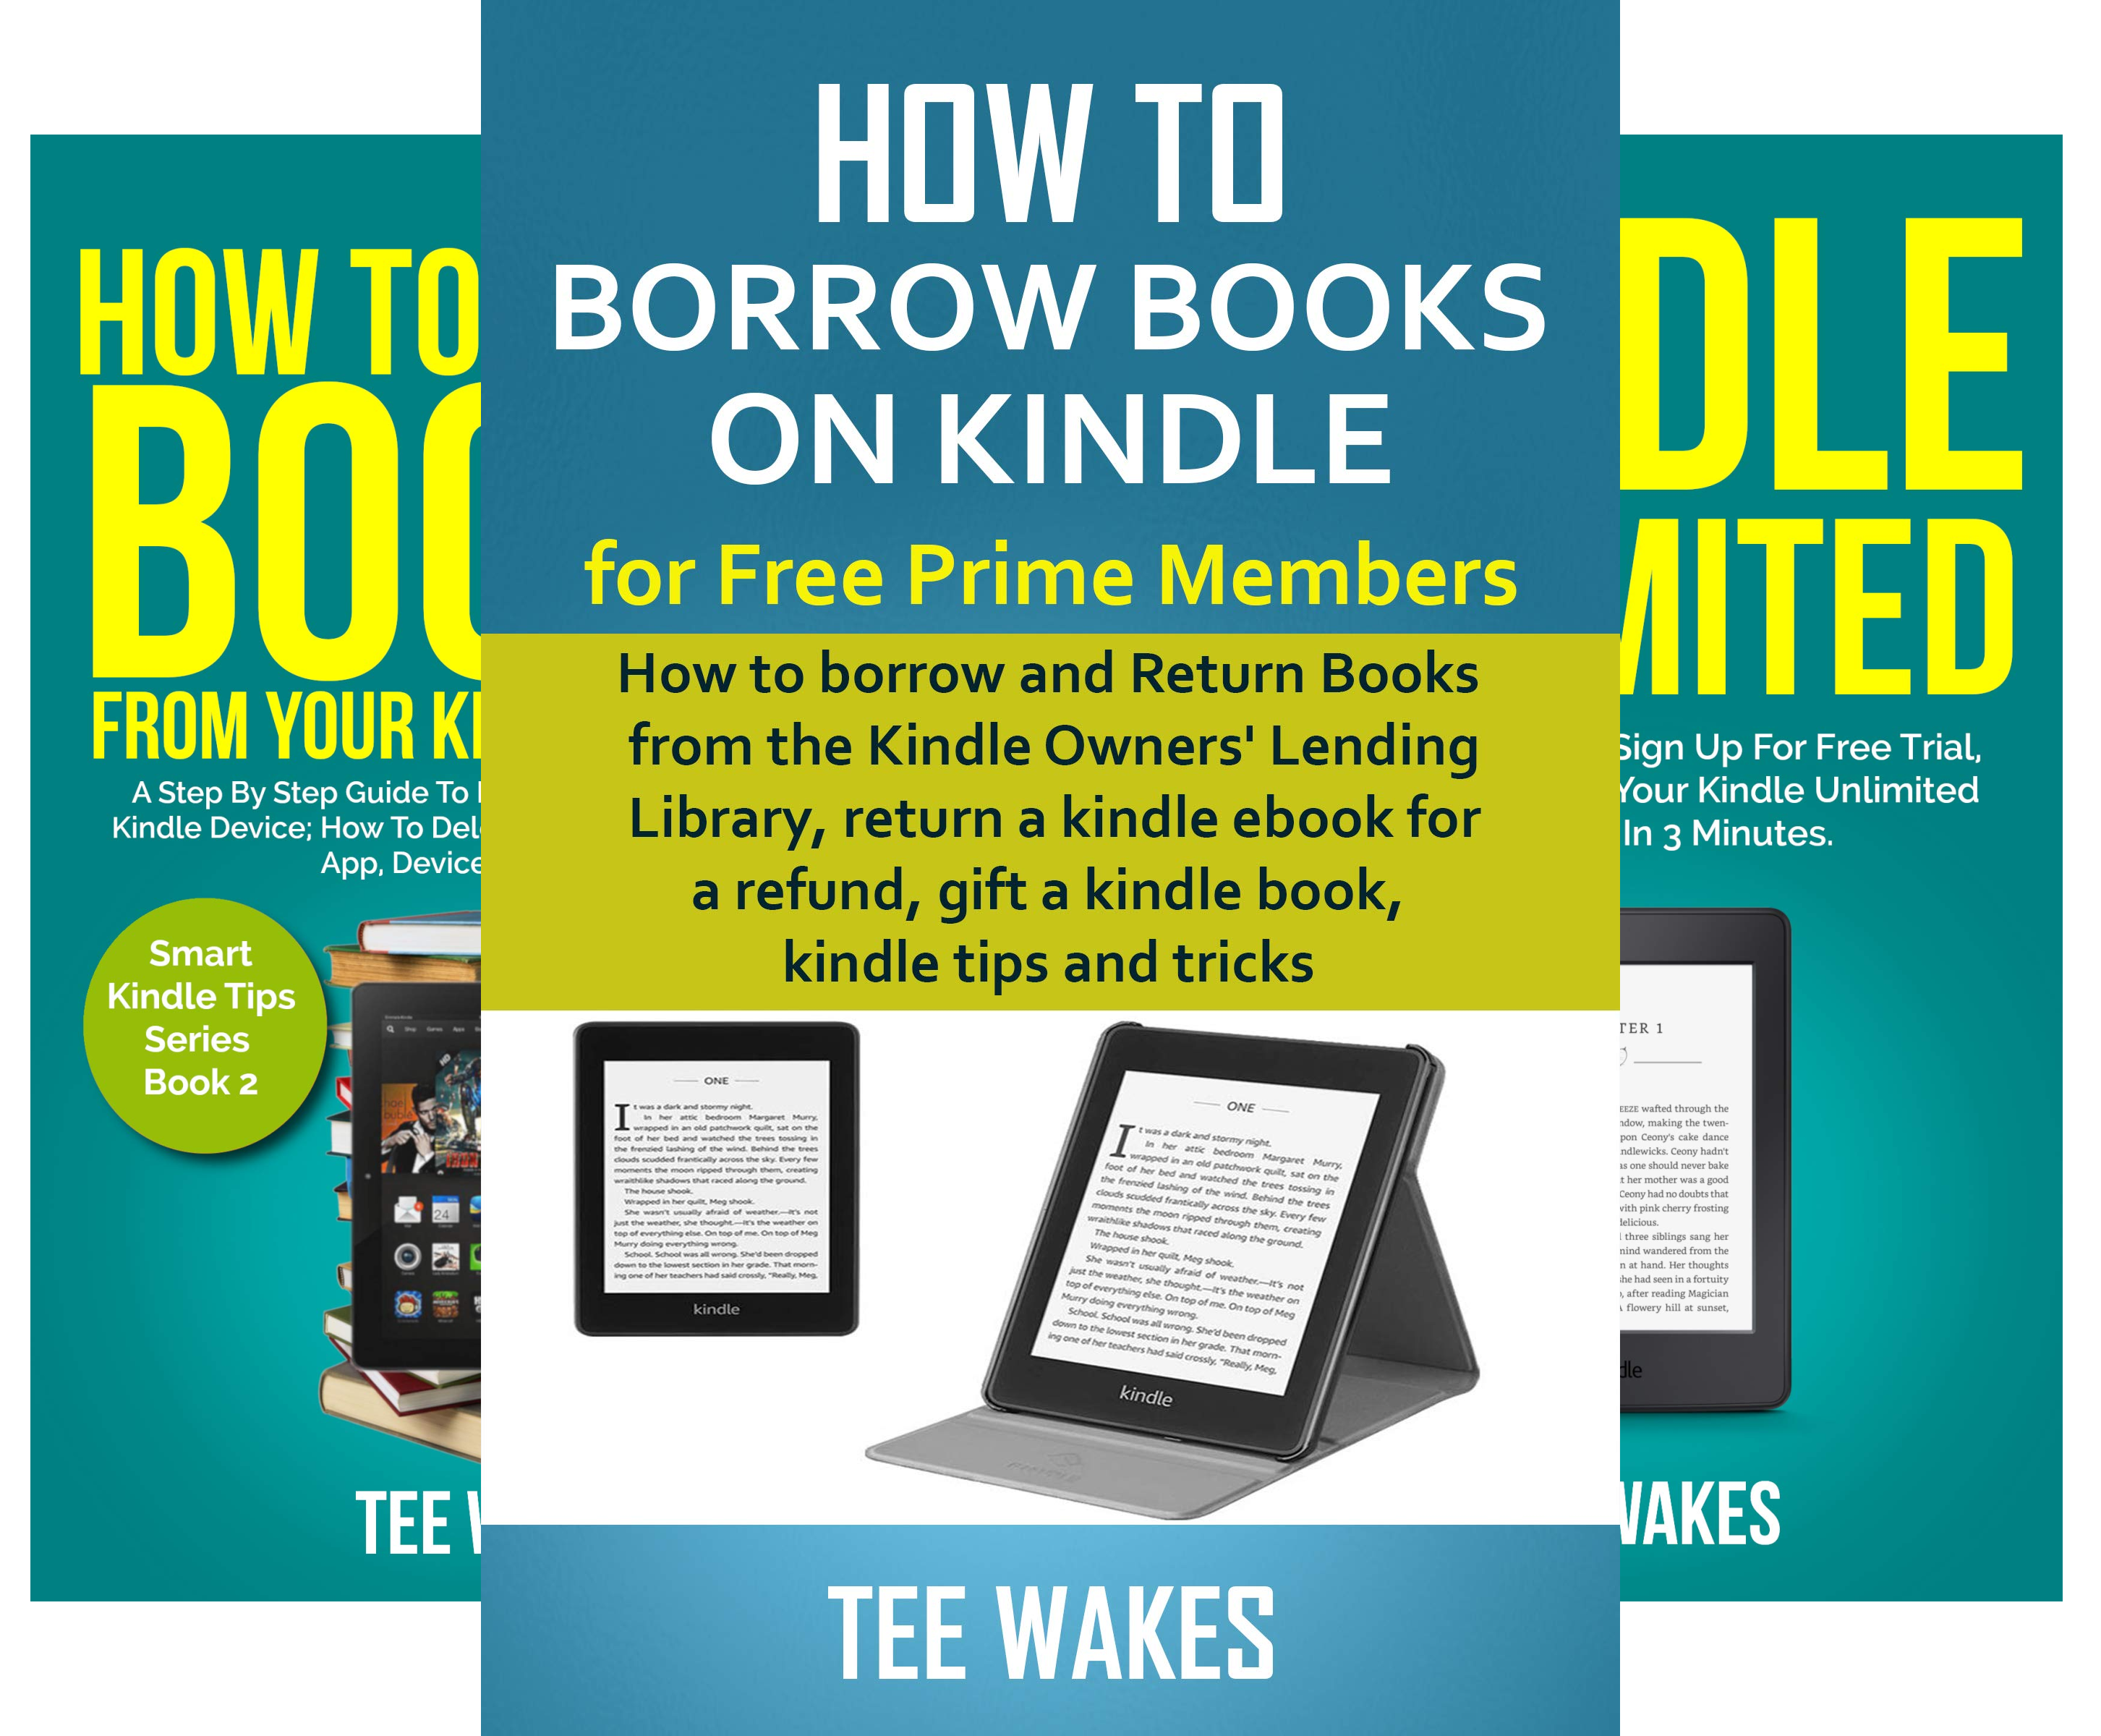 Smart Kindle Tips (4 Book Series)